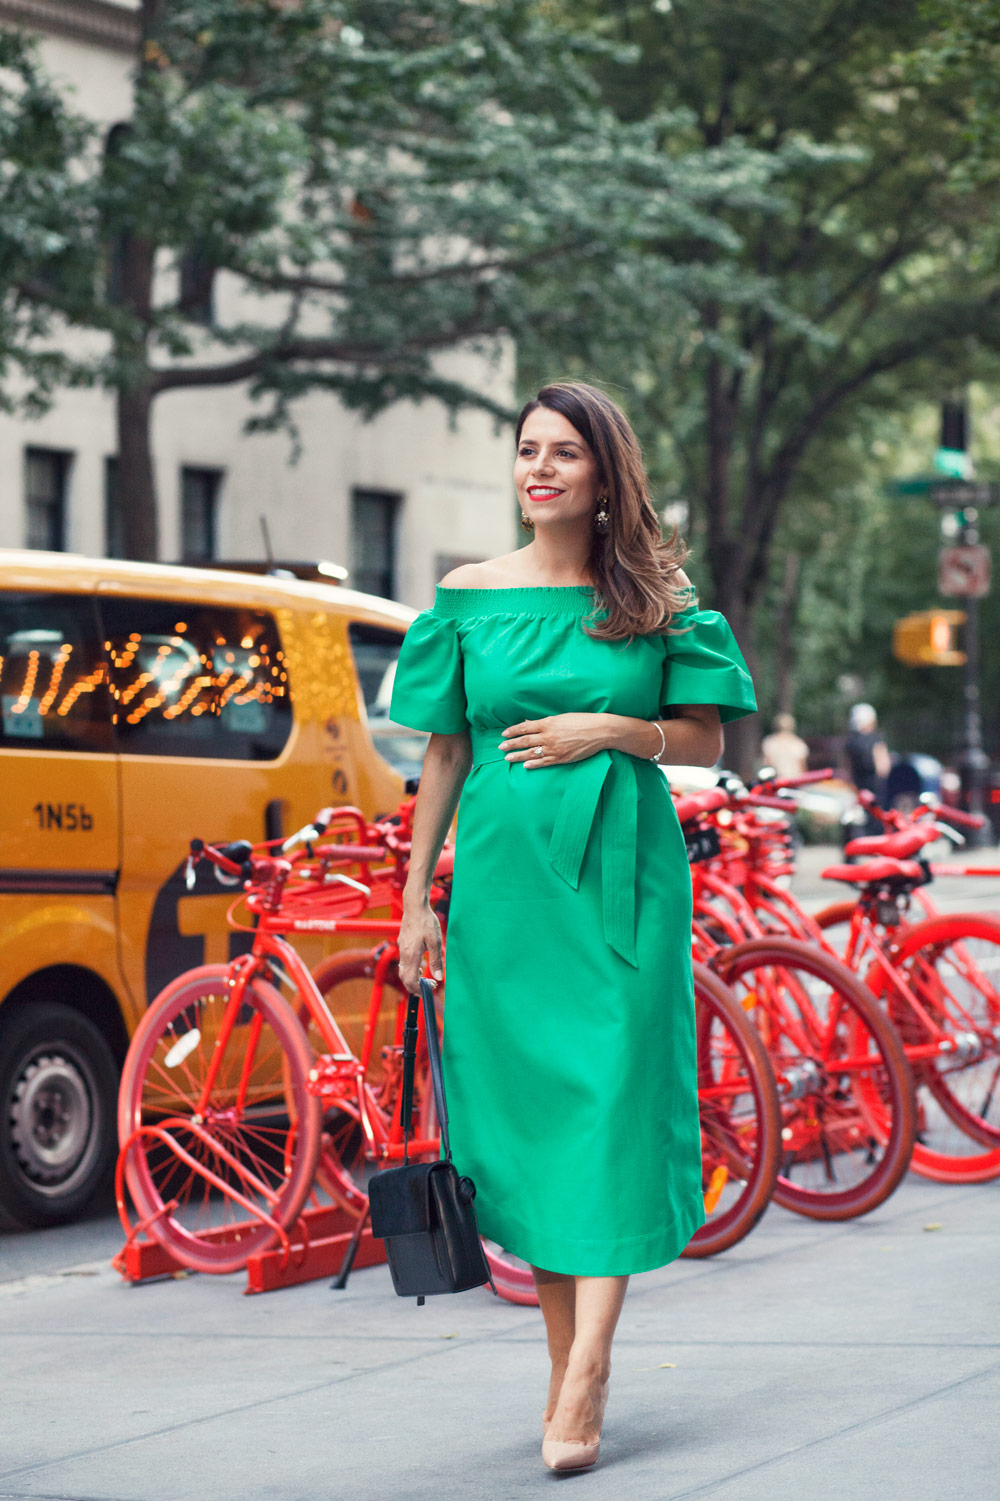 jcrew green off the shoulder dress emerald green summer outfit worth new york city fashion blogger NYC corporate catwalk nude heels outfit ideas 1